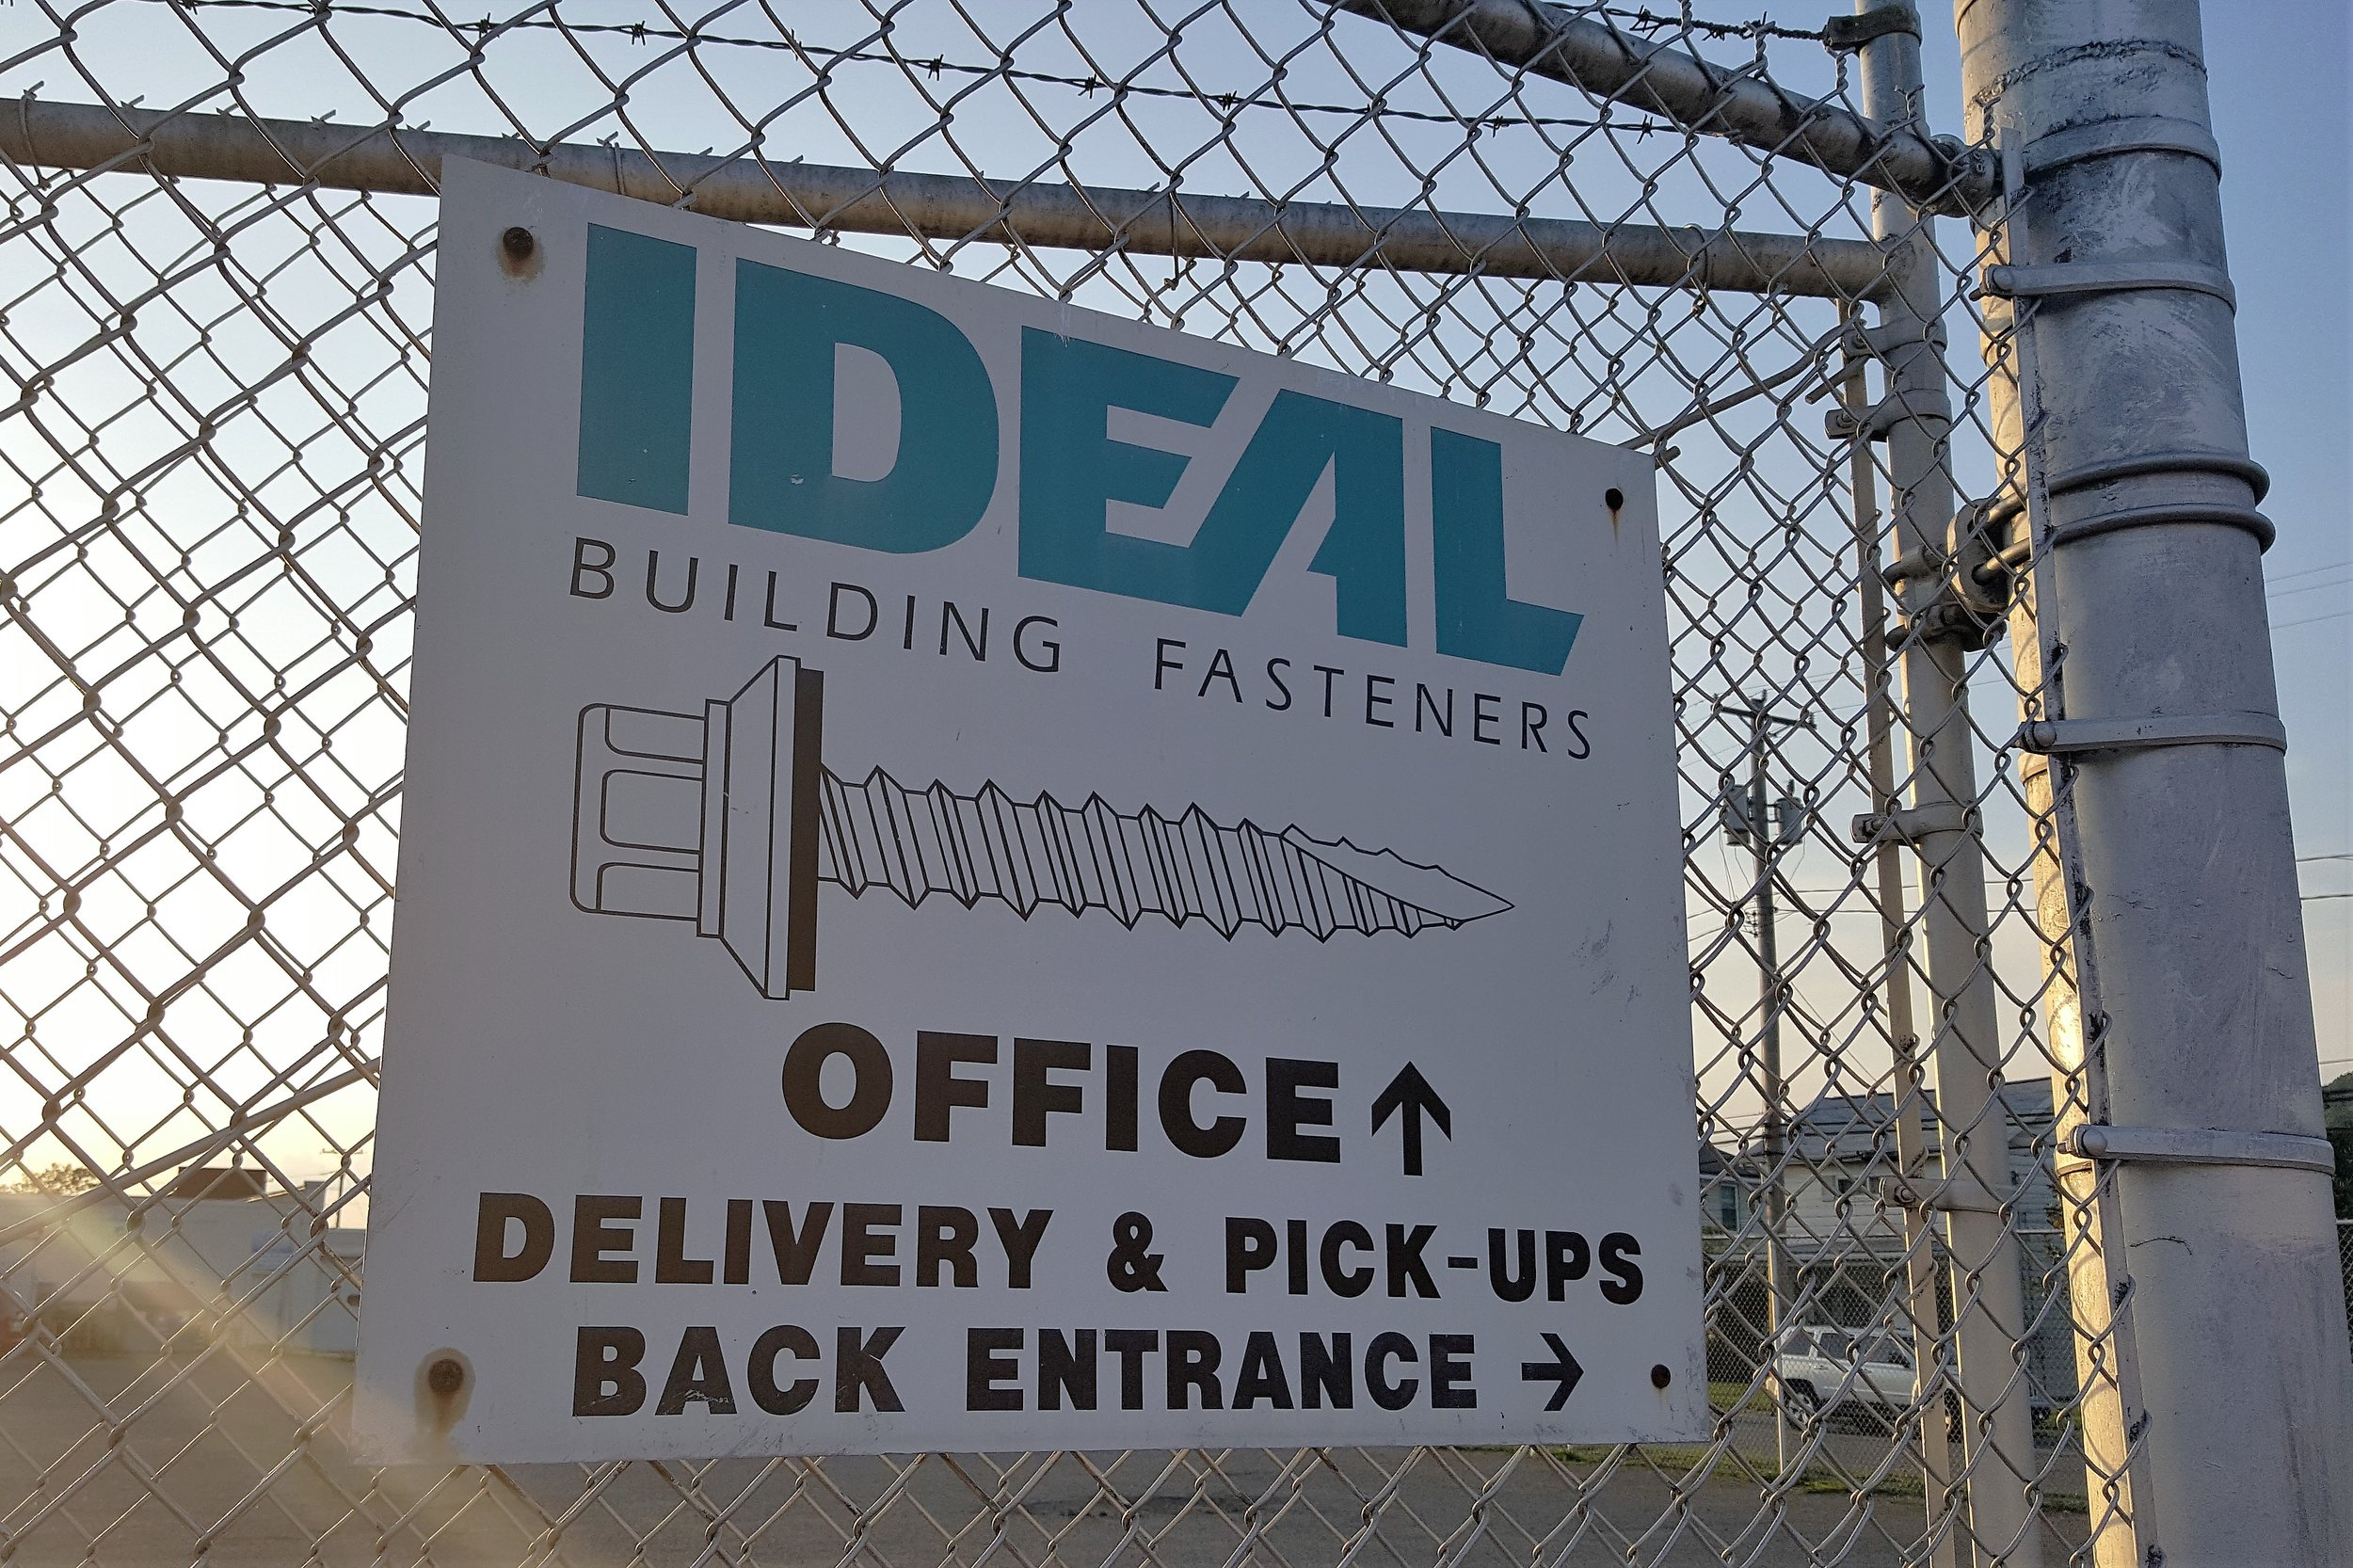 Ideal Building Fastners - 920 2nd Ave, (800) 670-5767